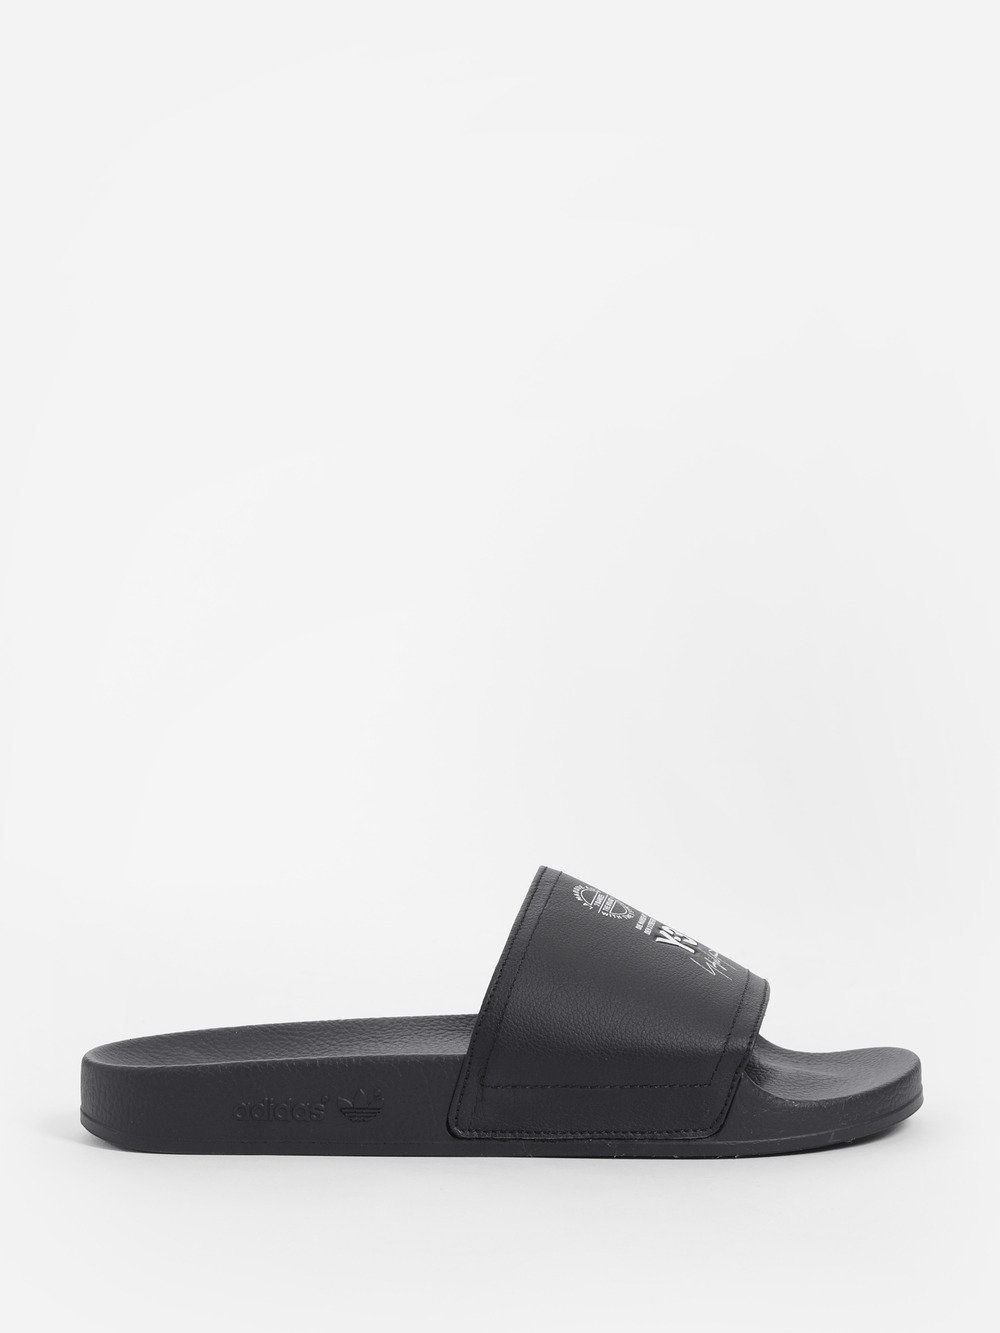 ADILETTE BLACK RUBBER AND SYNTHETIC LEATHER SLIPPER